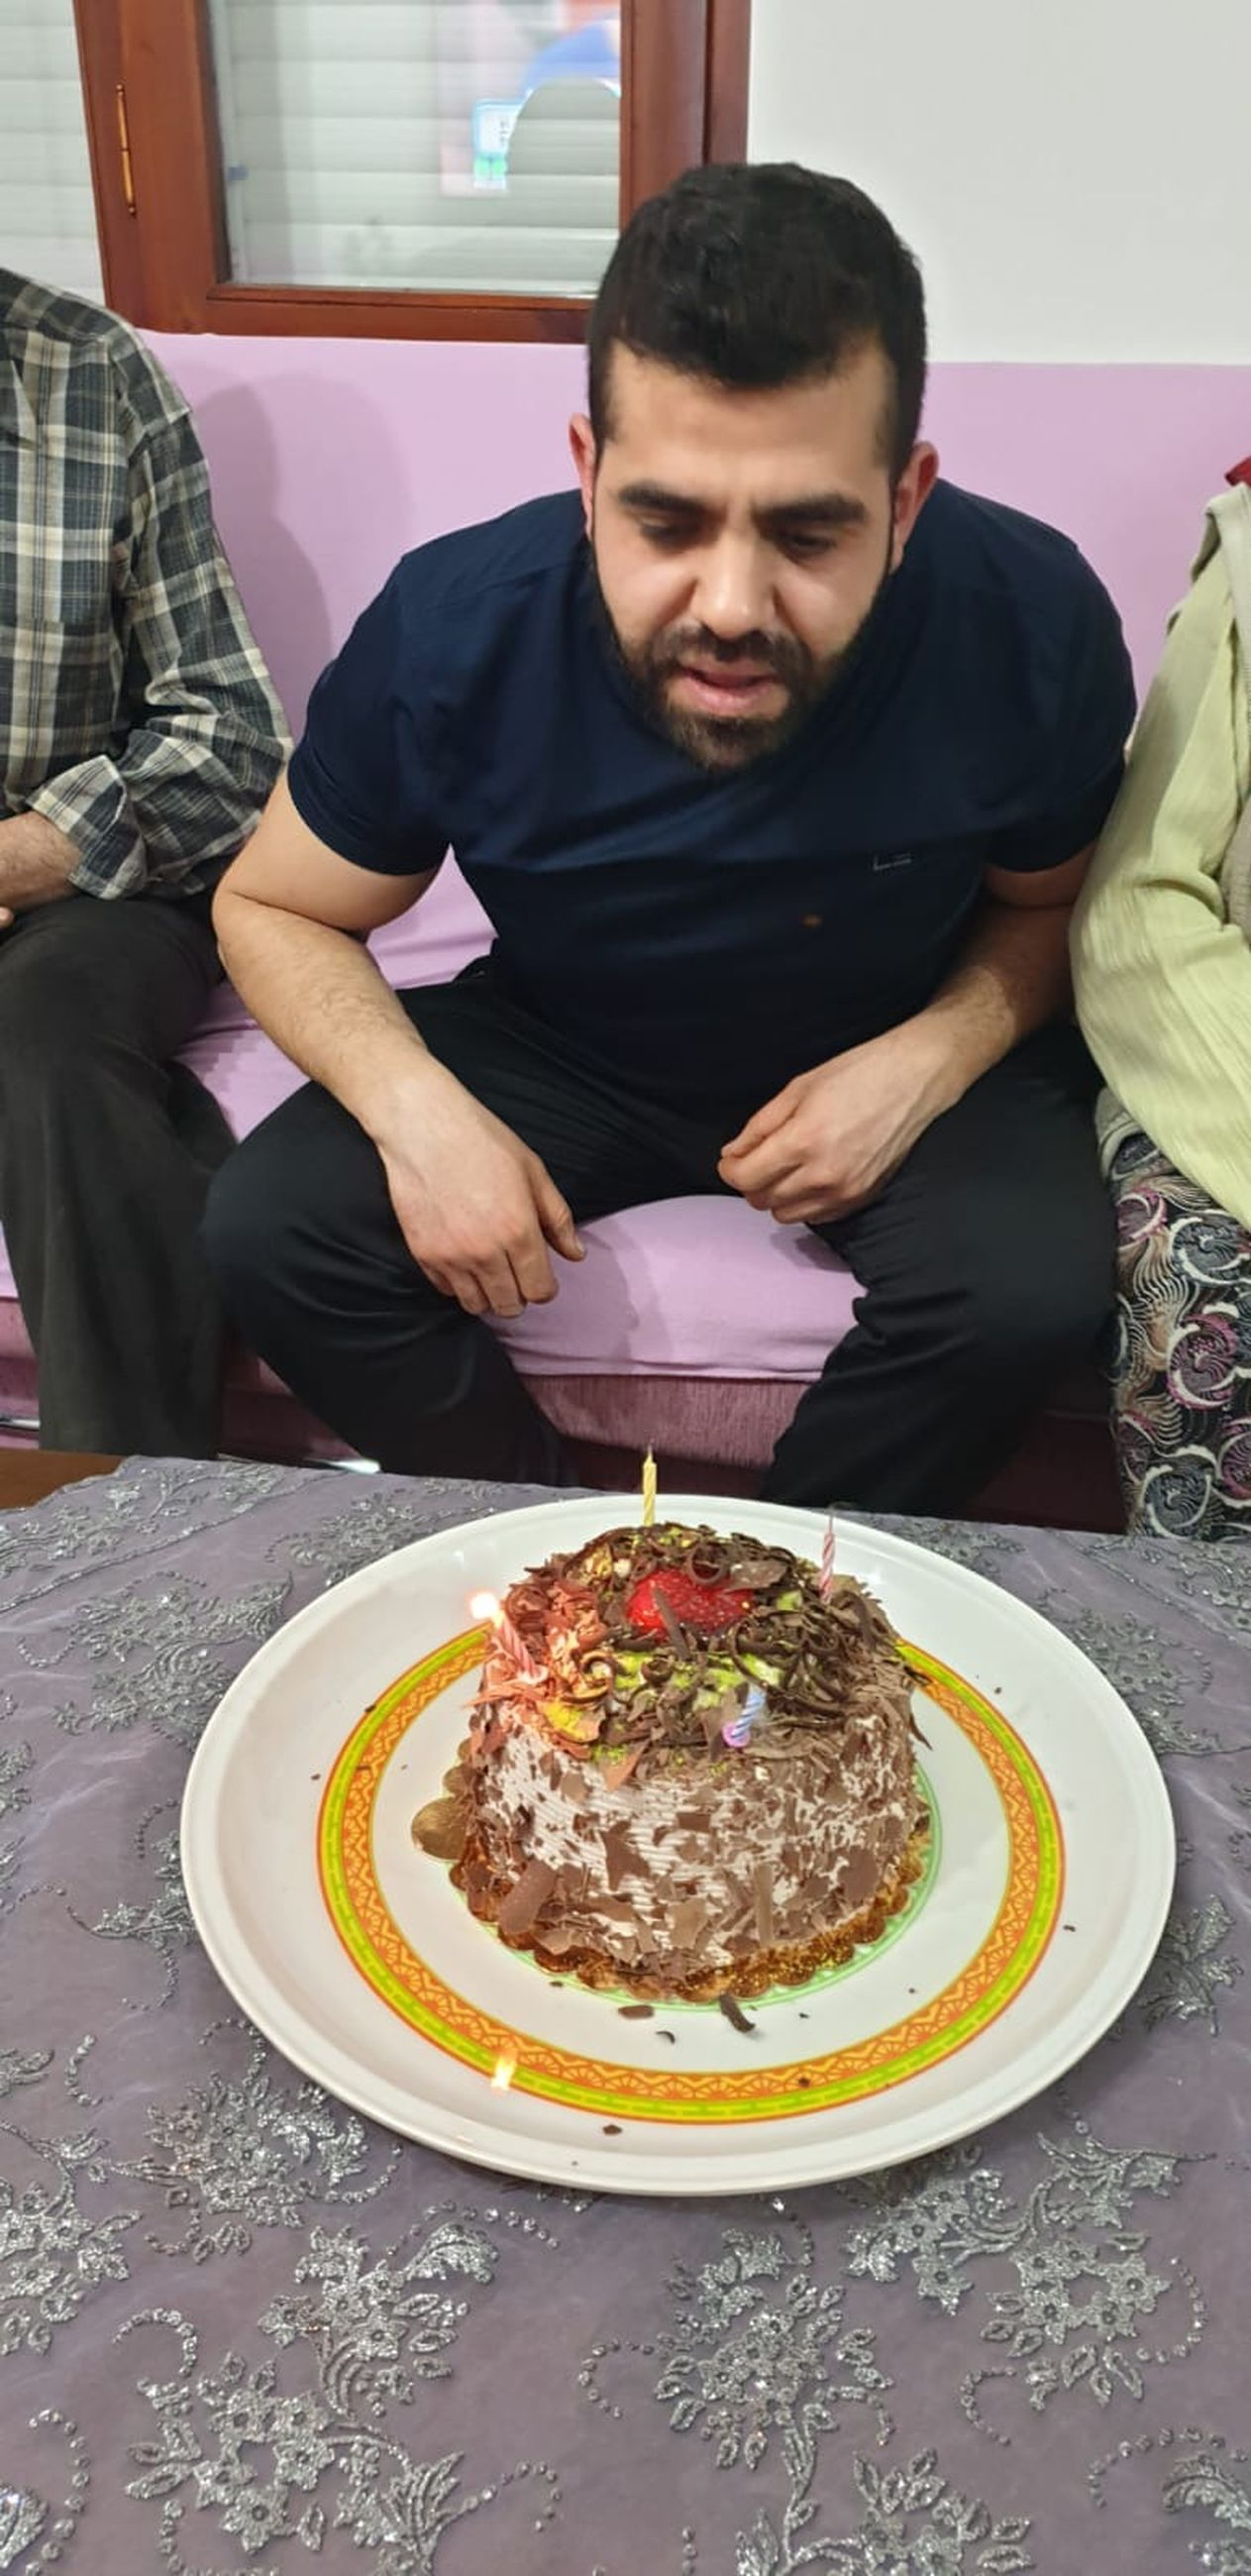 food and drink, food, real people, table, plate, indoors, front view, casual clothing, sitting, freshness, cake, lifestyles, people, sweet food, dessert, men, baked, sweet, birthday cake, temptation